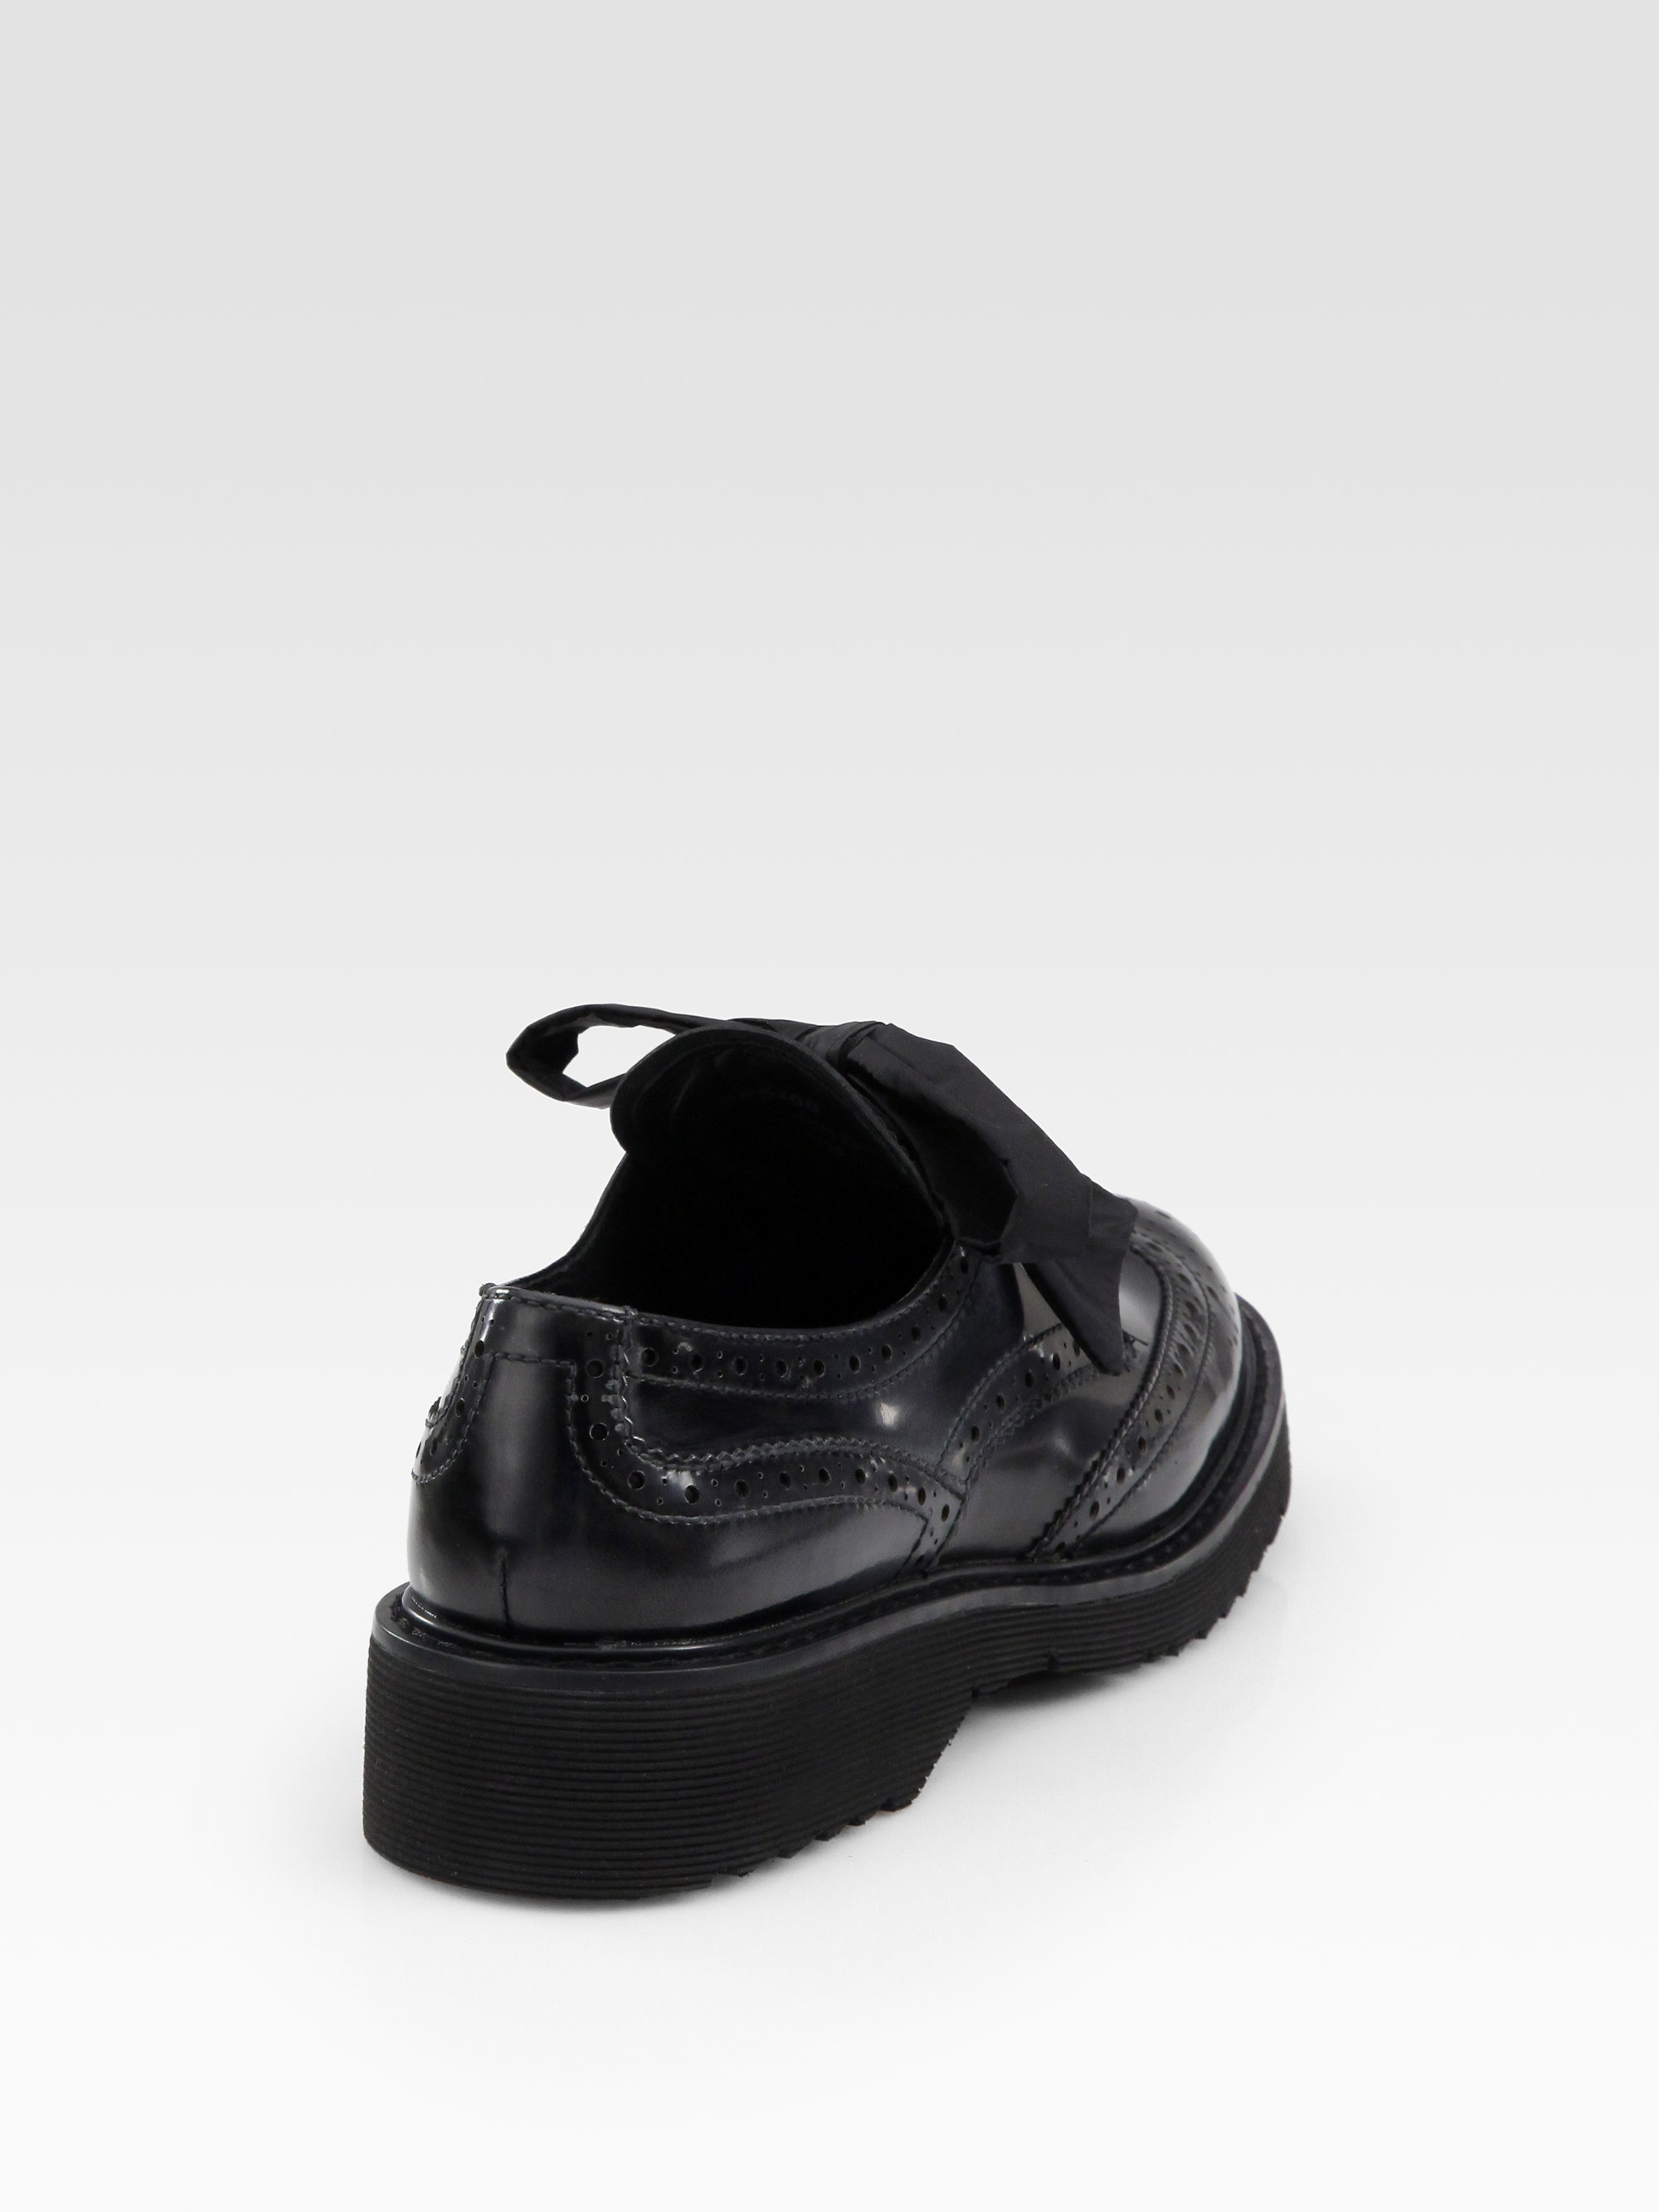 authentic prada handbags online - Prada Spazzolato Lace-up Wing Tip Oxfords in Black (anthracite) | Lyst